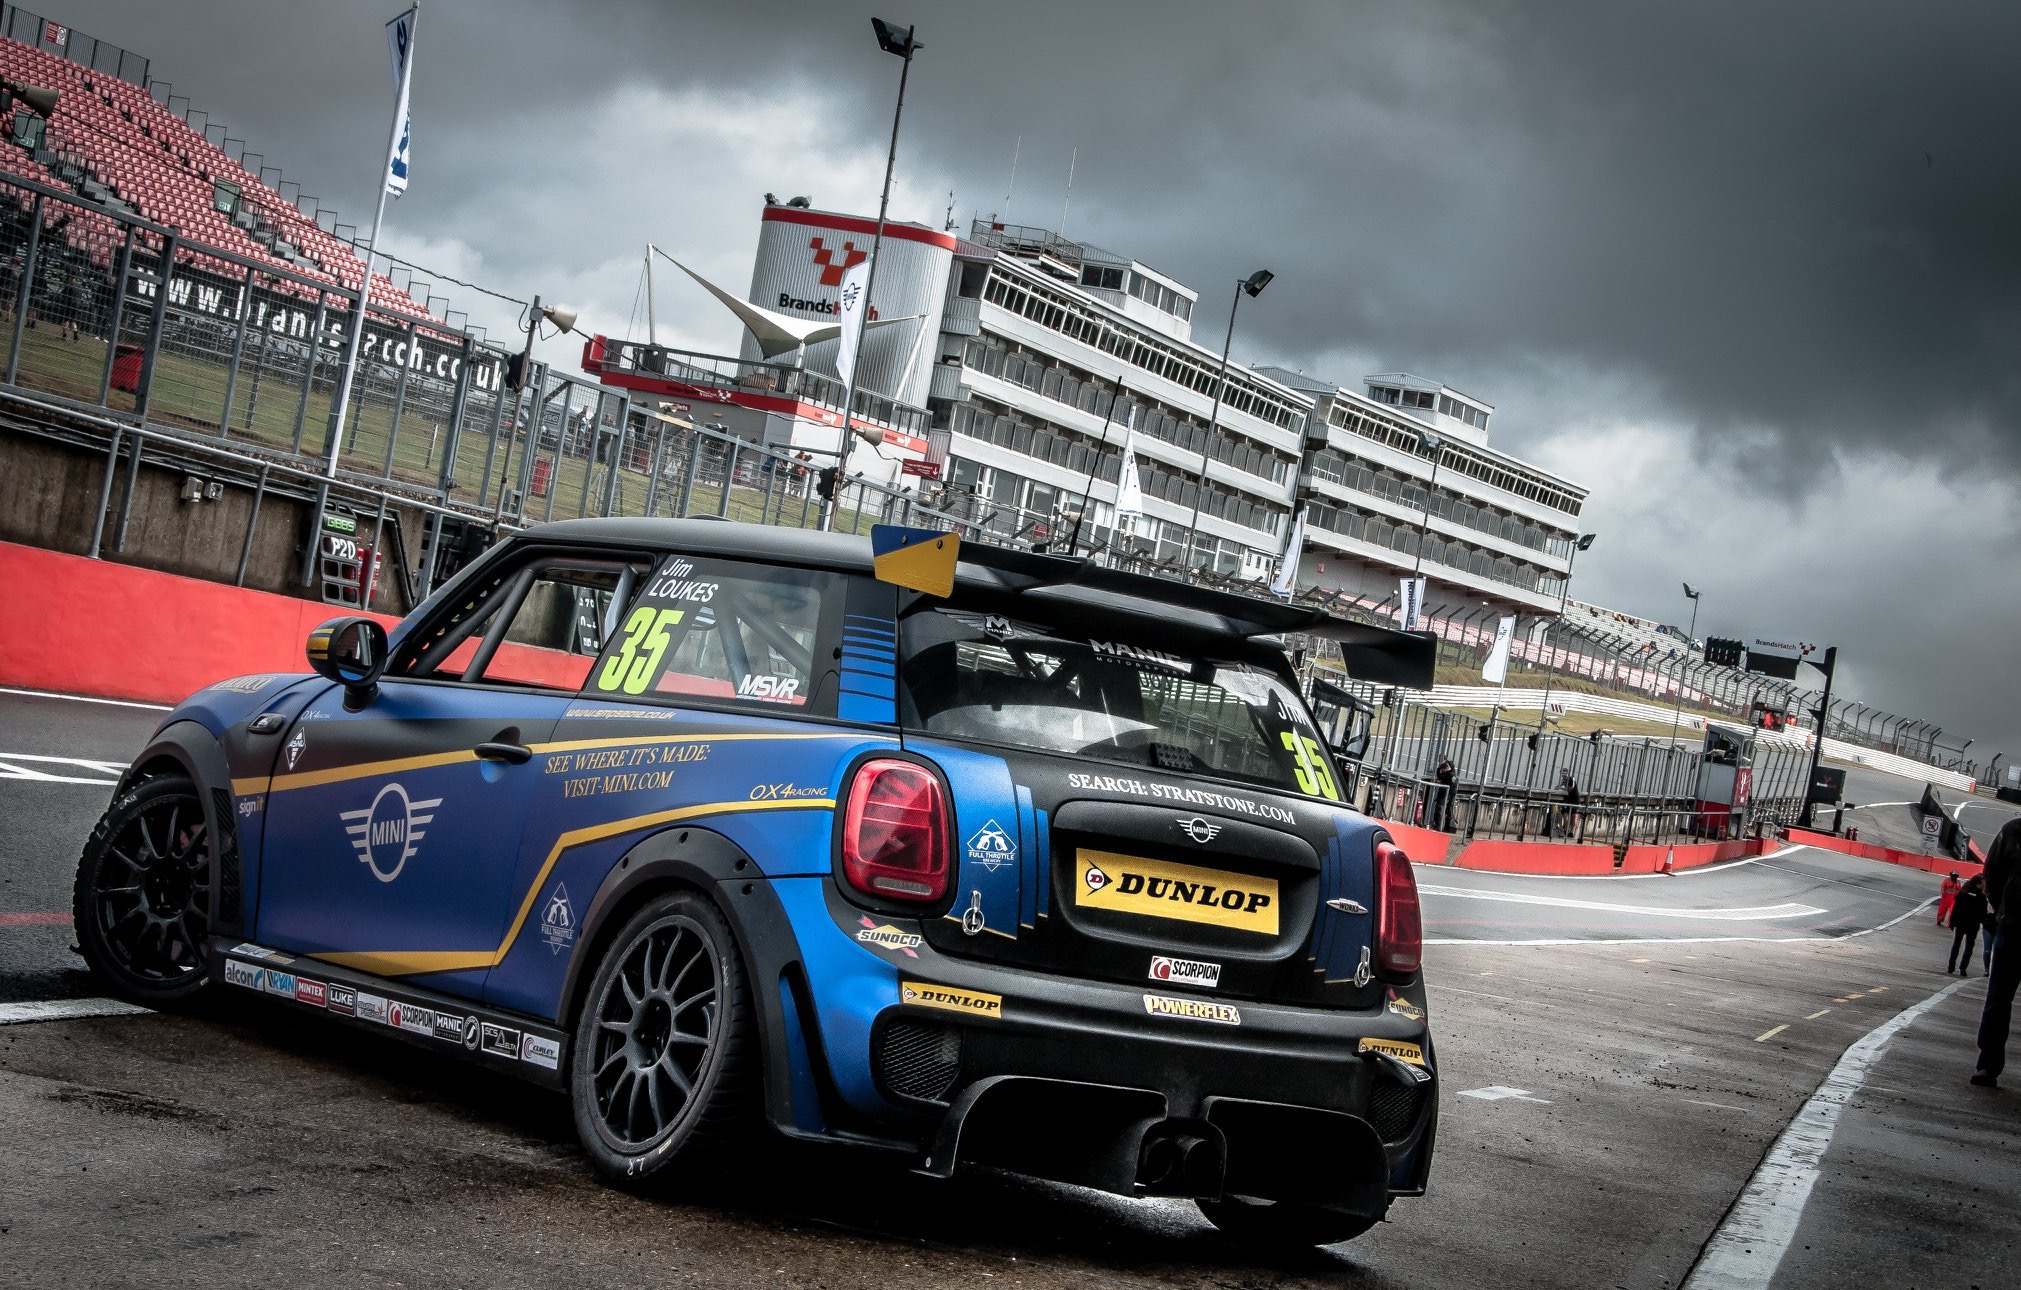 Mini on grid with cloudy background